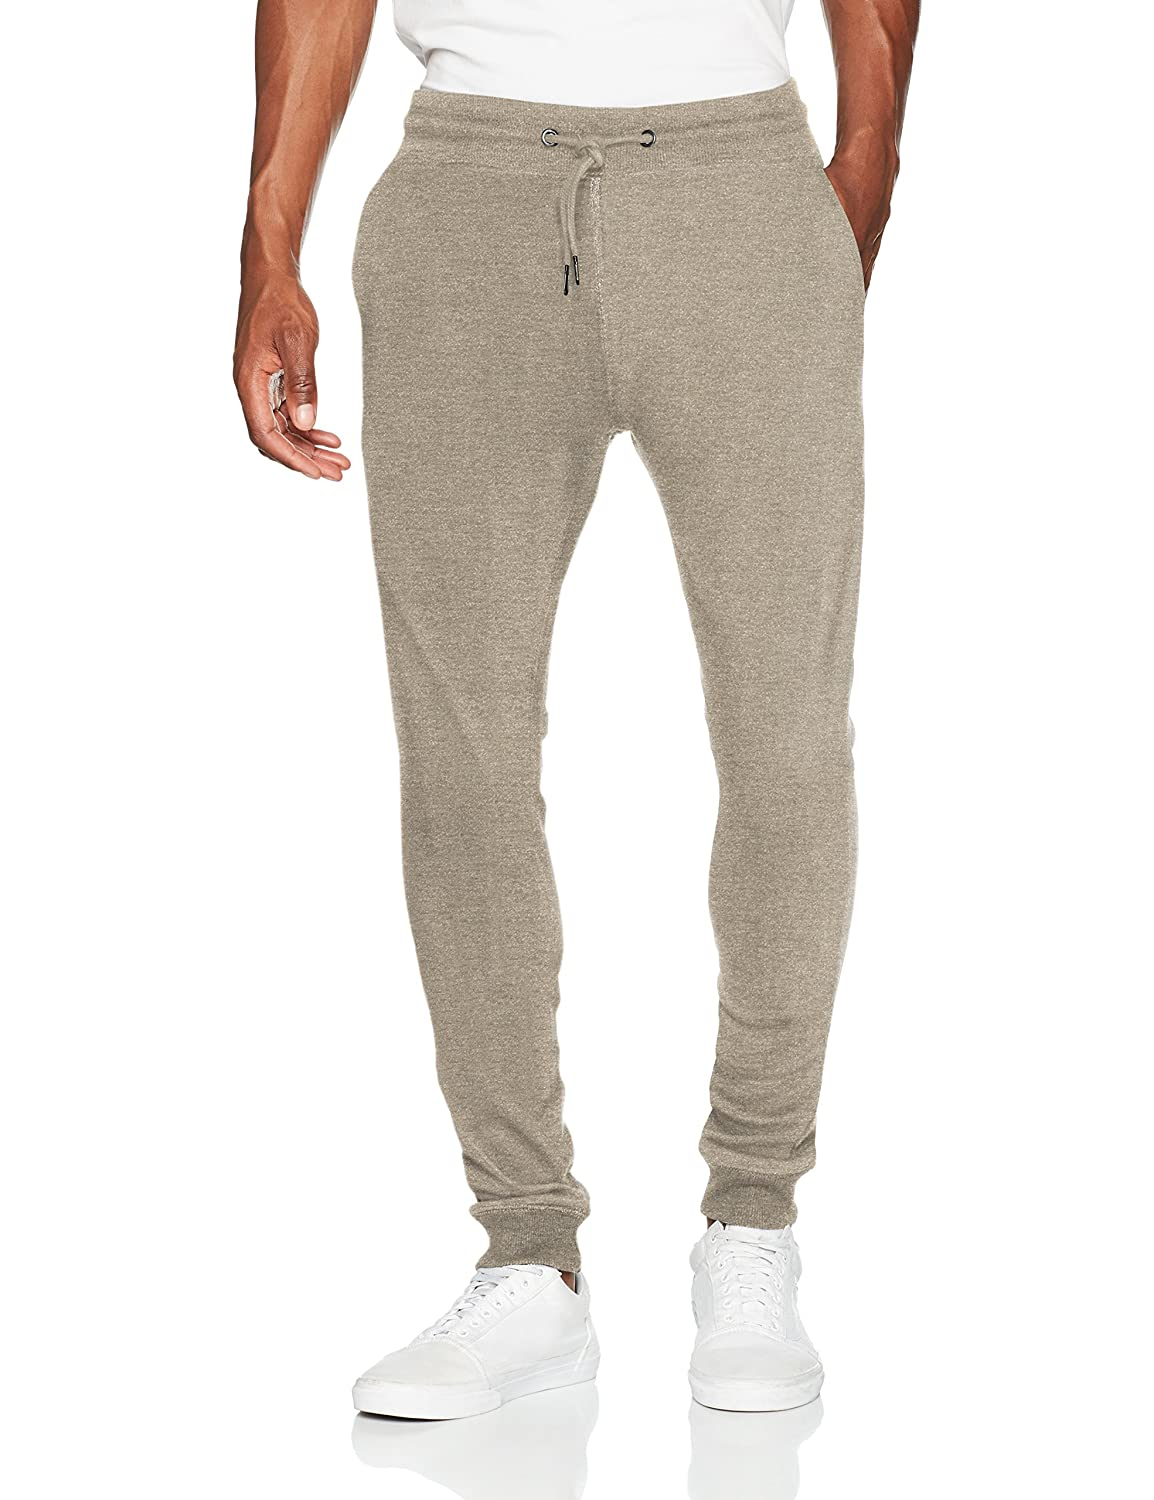 TALLA 54 (Talla del fabricante: X-Large). Only & Sons Onsfiske Sweat Pants Brushed Noos, Pantalones para Hombre